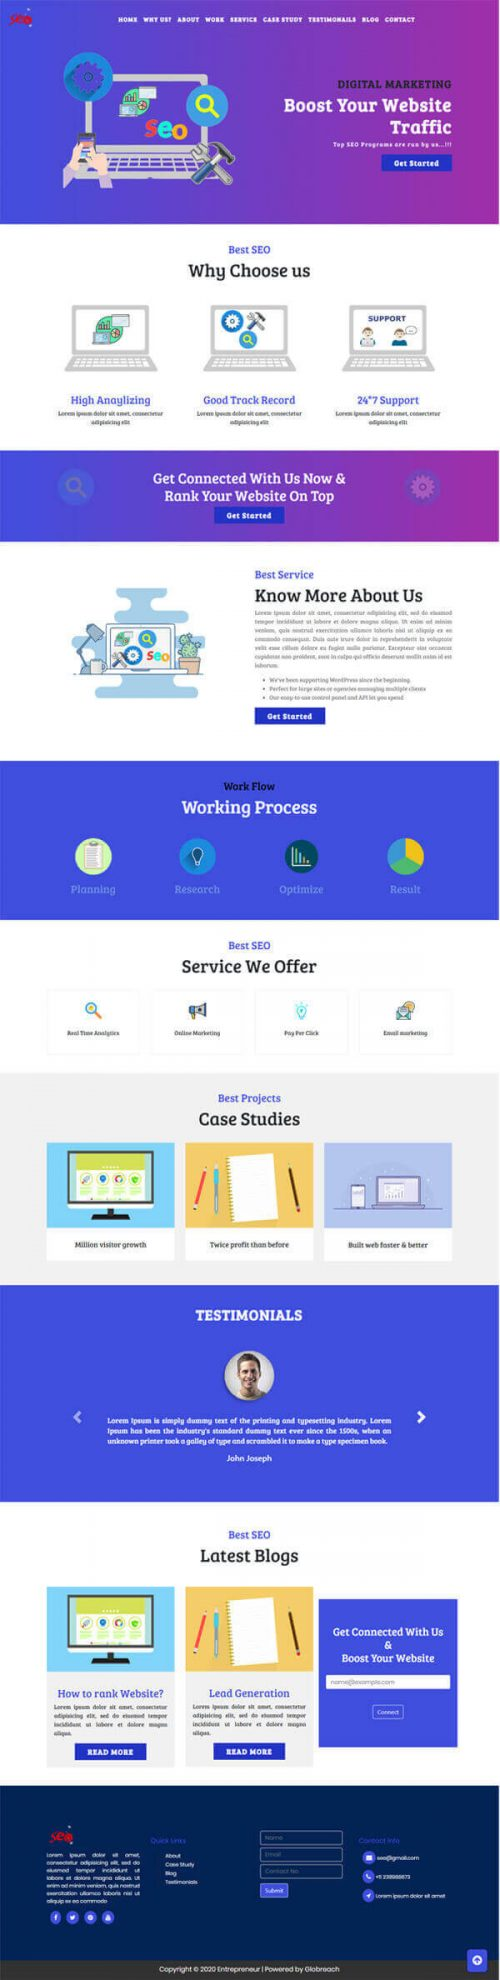 Bolt – SEO Digital marketing website design template